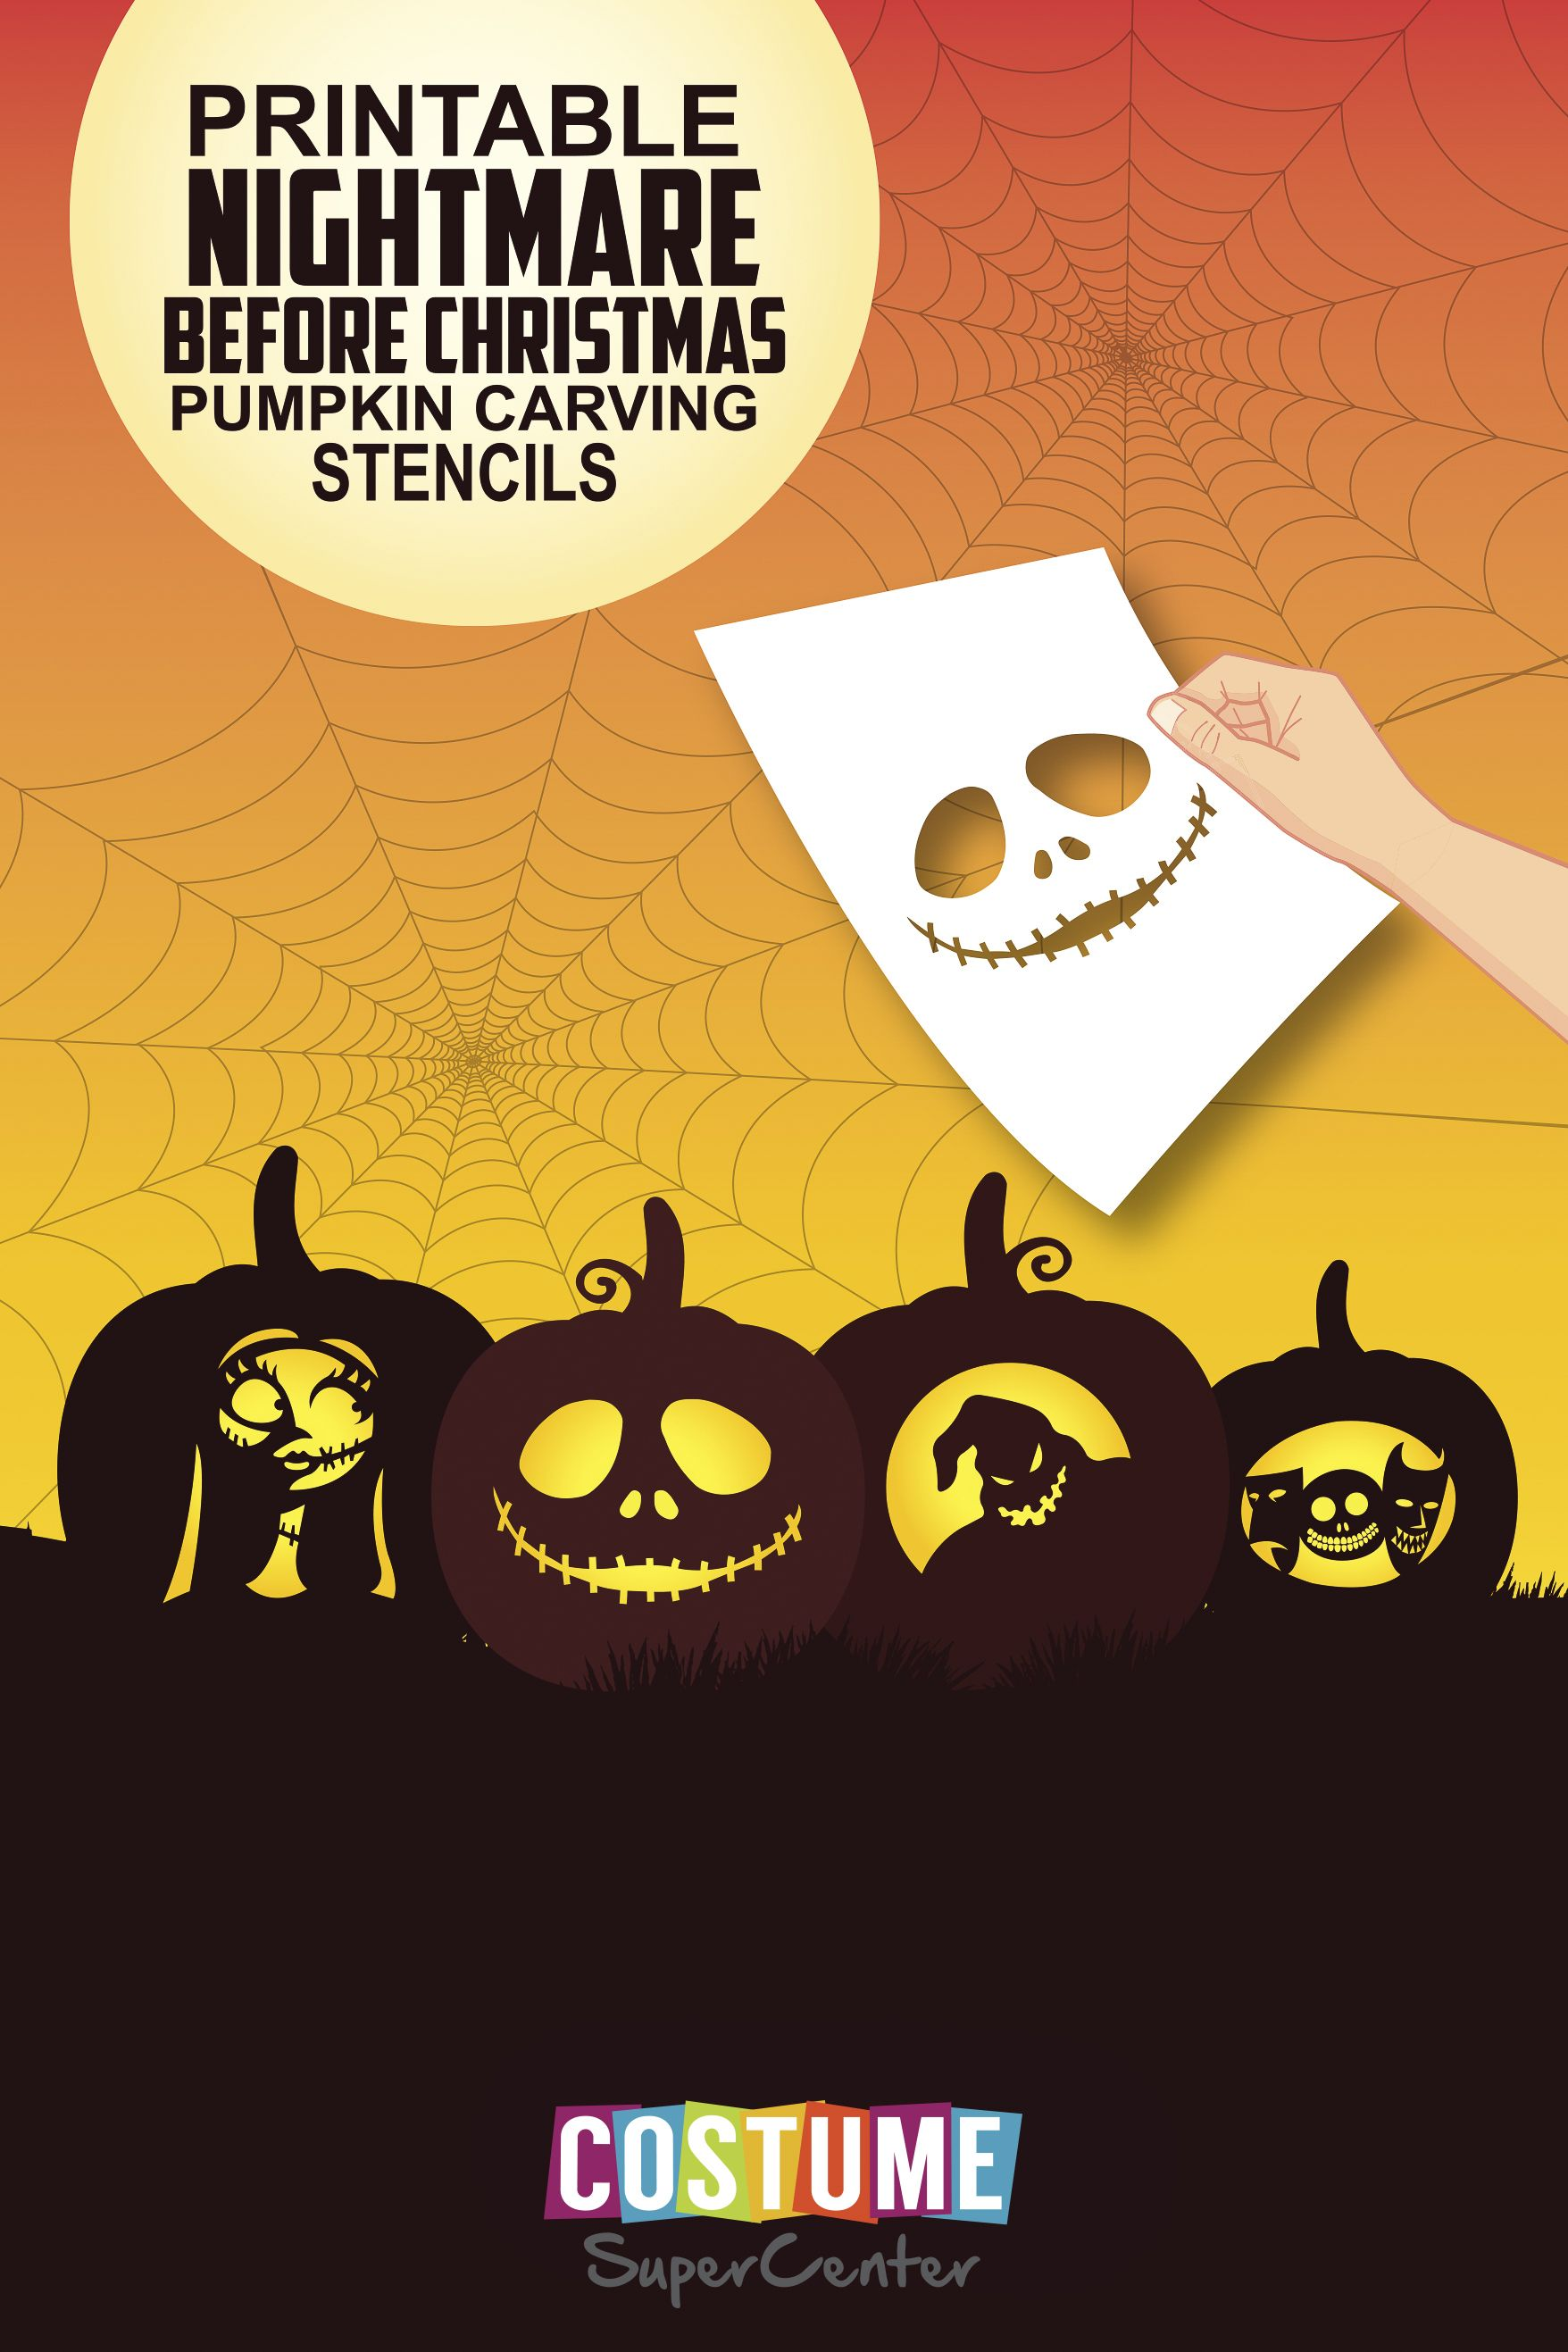 Nightmare Before Christmas Pumpkin Carving Stencils | Home projects ...